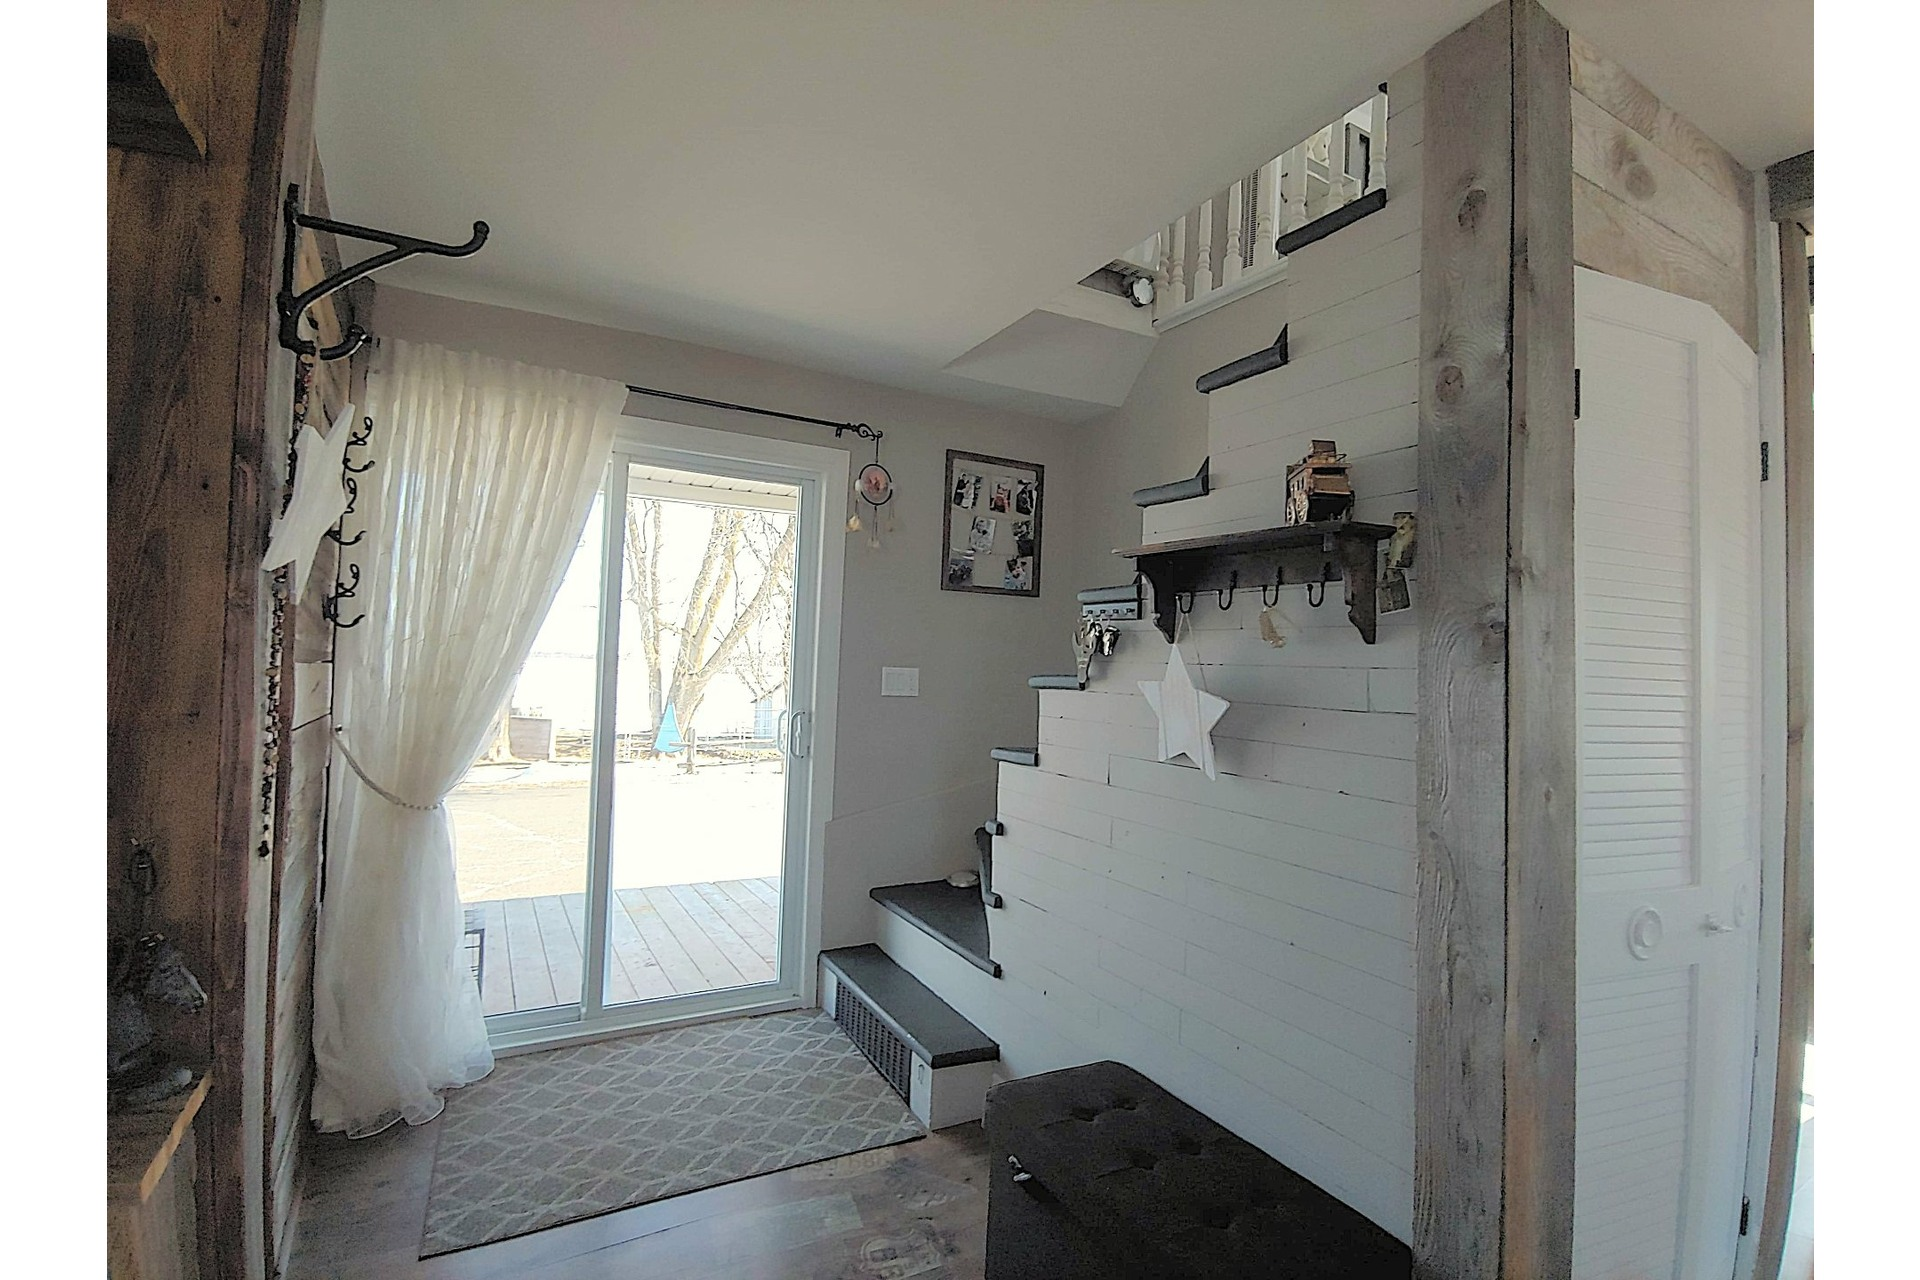 image 2 - House For sale Notre-Dame-du-Bon-Conseil - Paroisse - 5 rooms